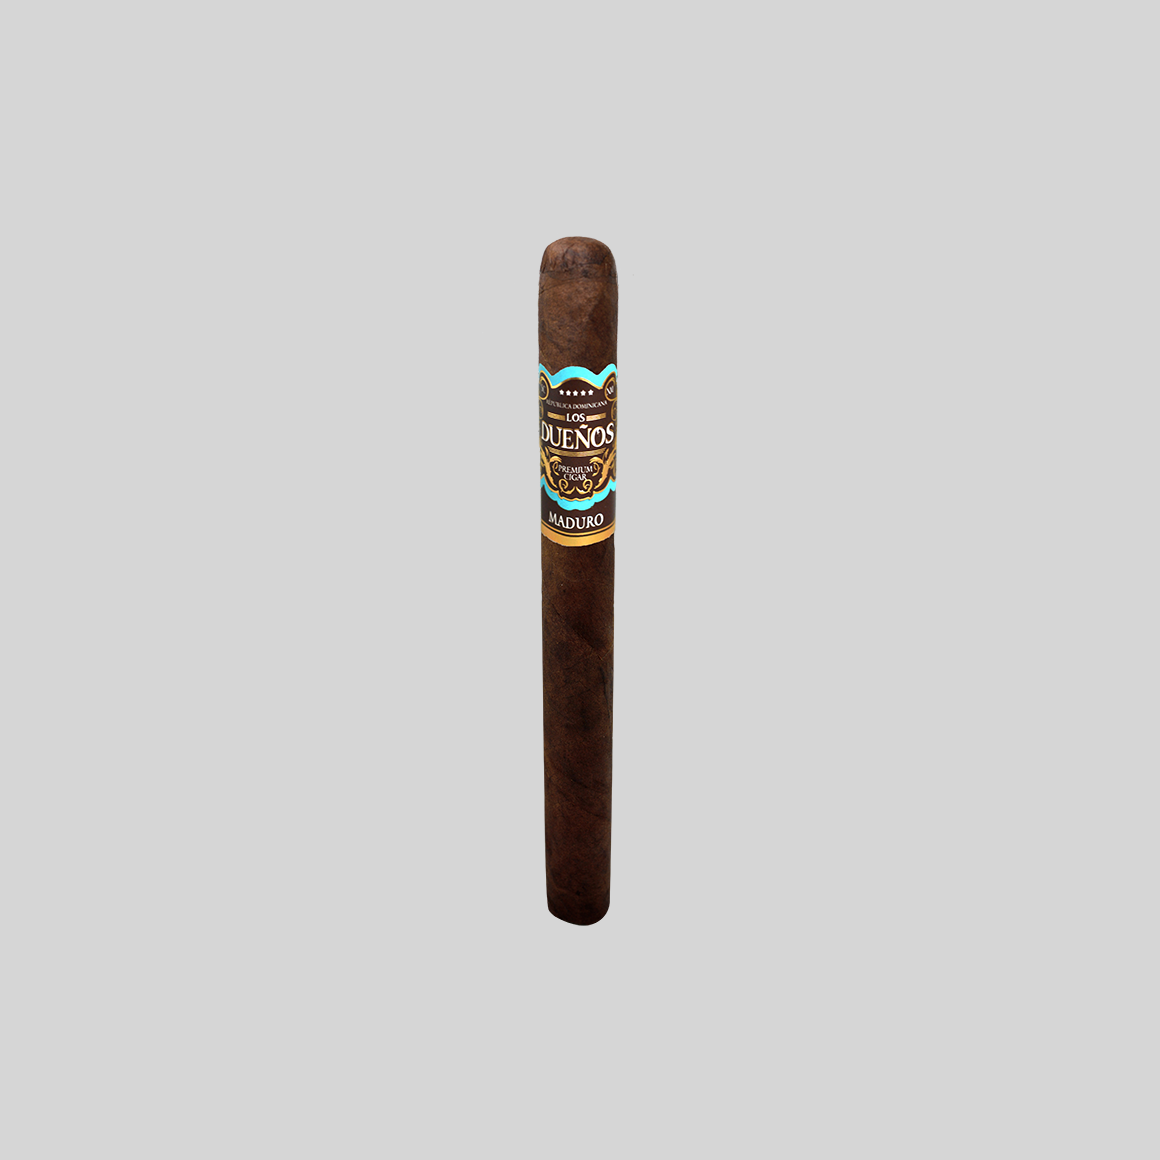 CHURCHILL MADURO WRAPPER